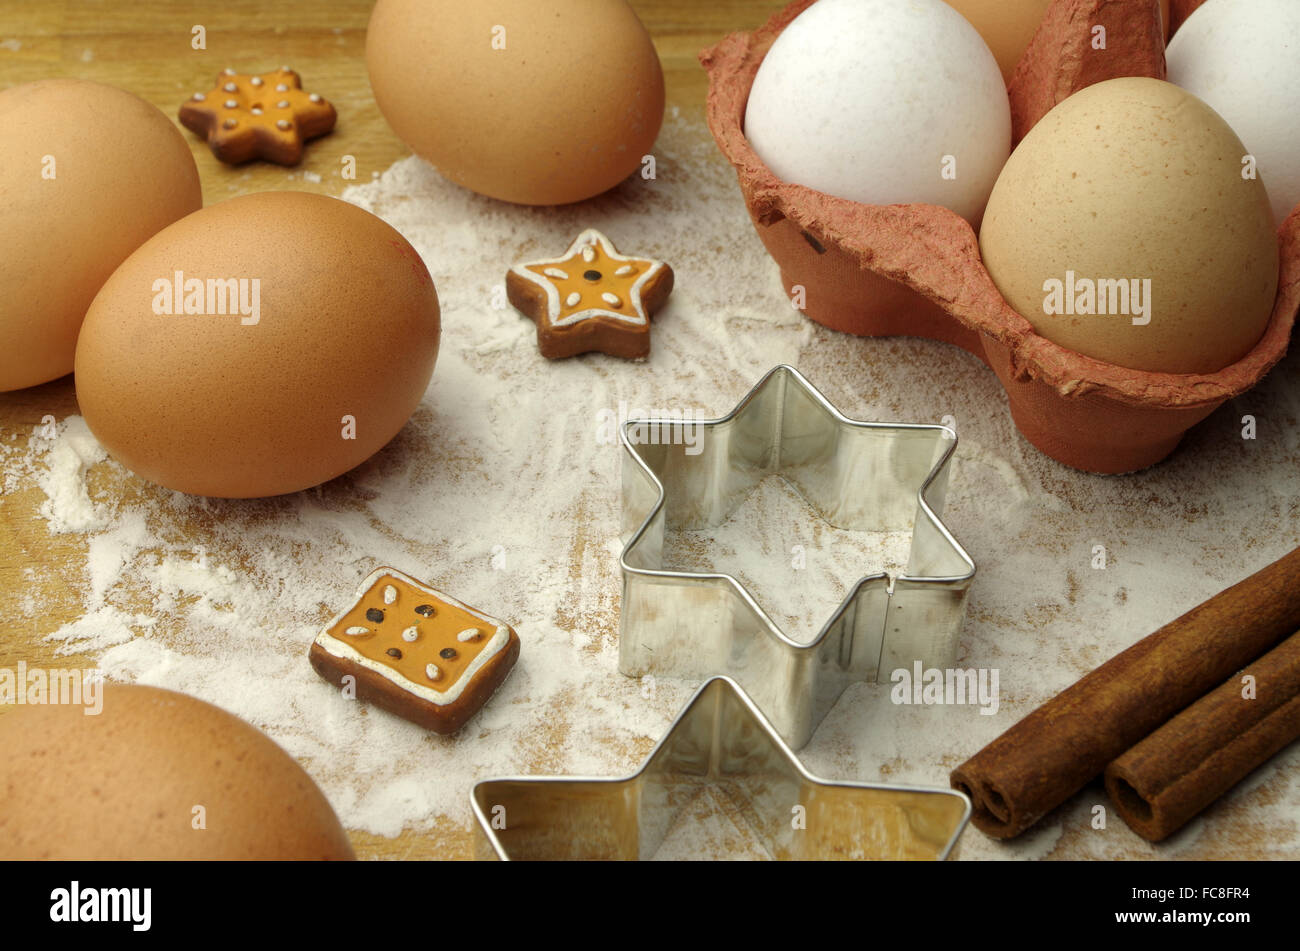 eggs and cookie cutters - Stock Image